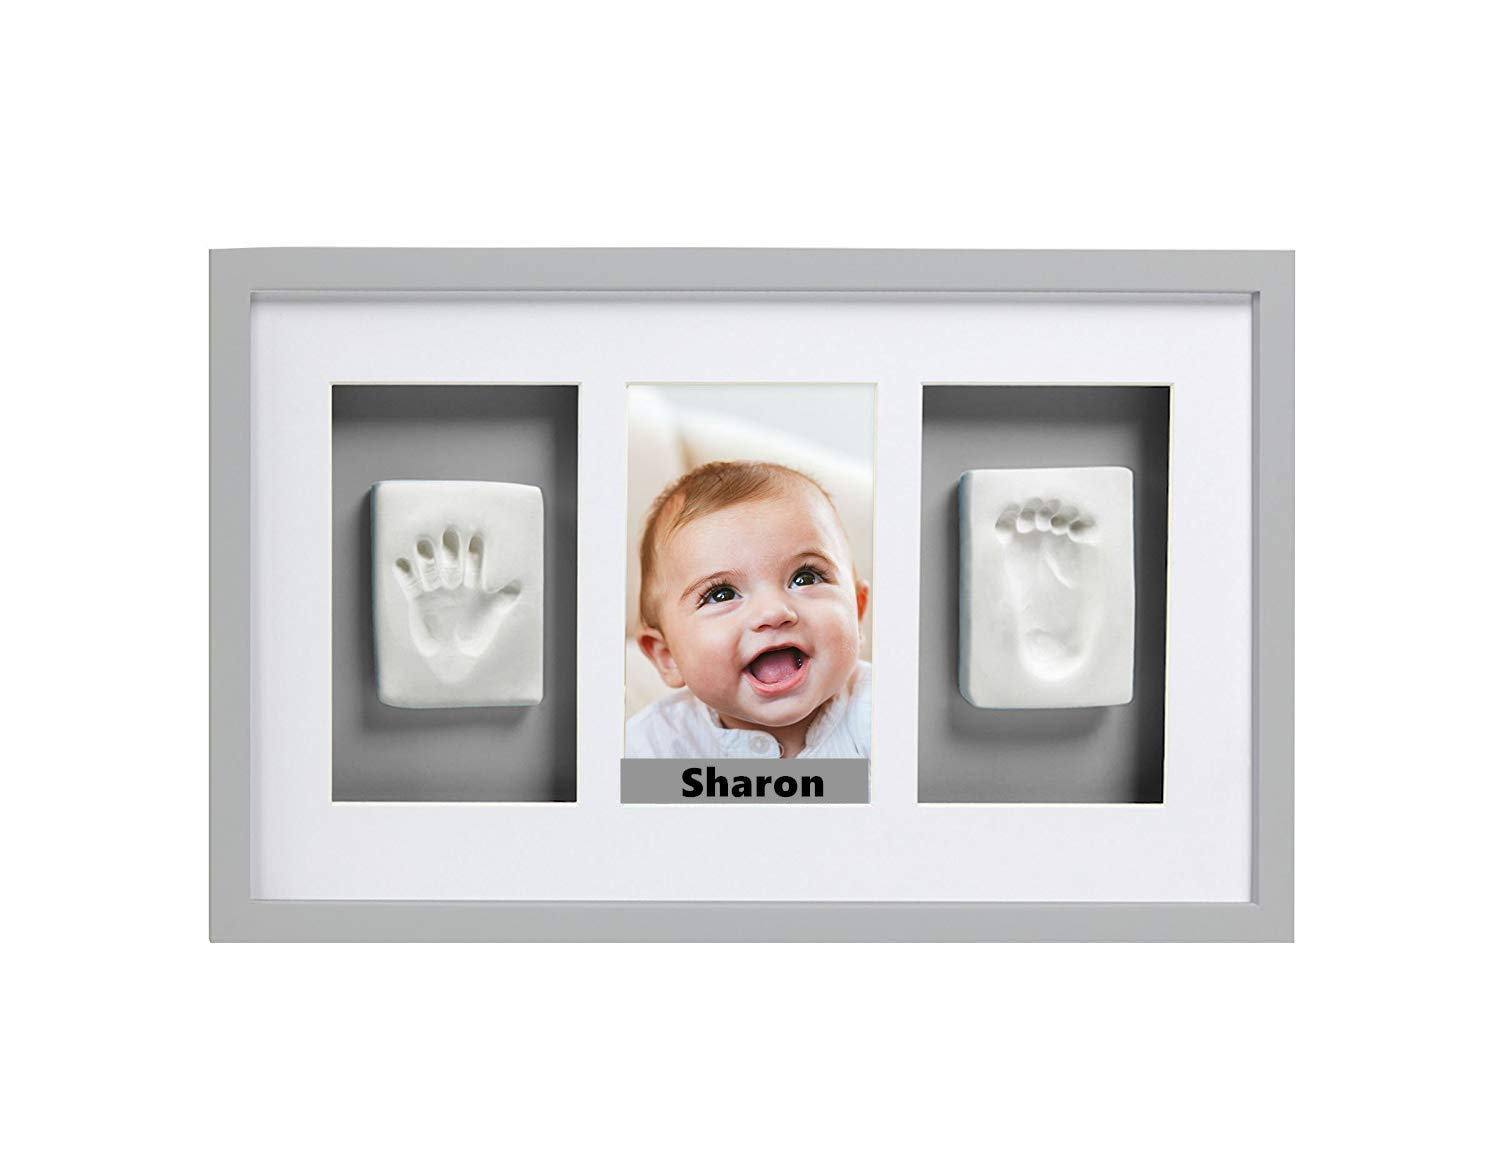 Babyprints Newborn Baby Handprint and Footprint Deluxe Wall Photo Frame with Name Card,The Perfect Mother's Day Gift for Any New Mum